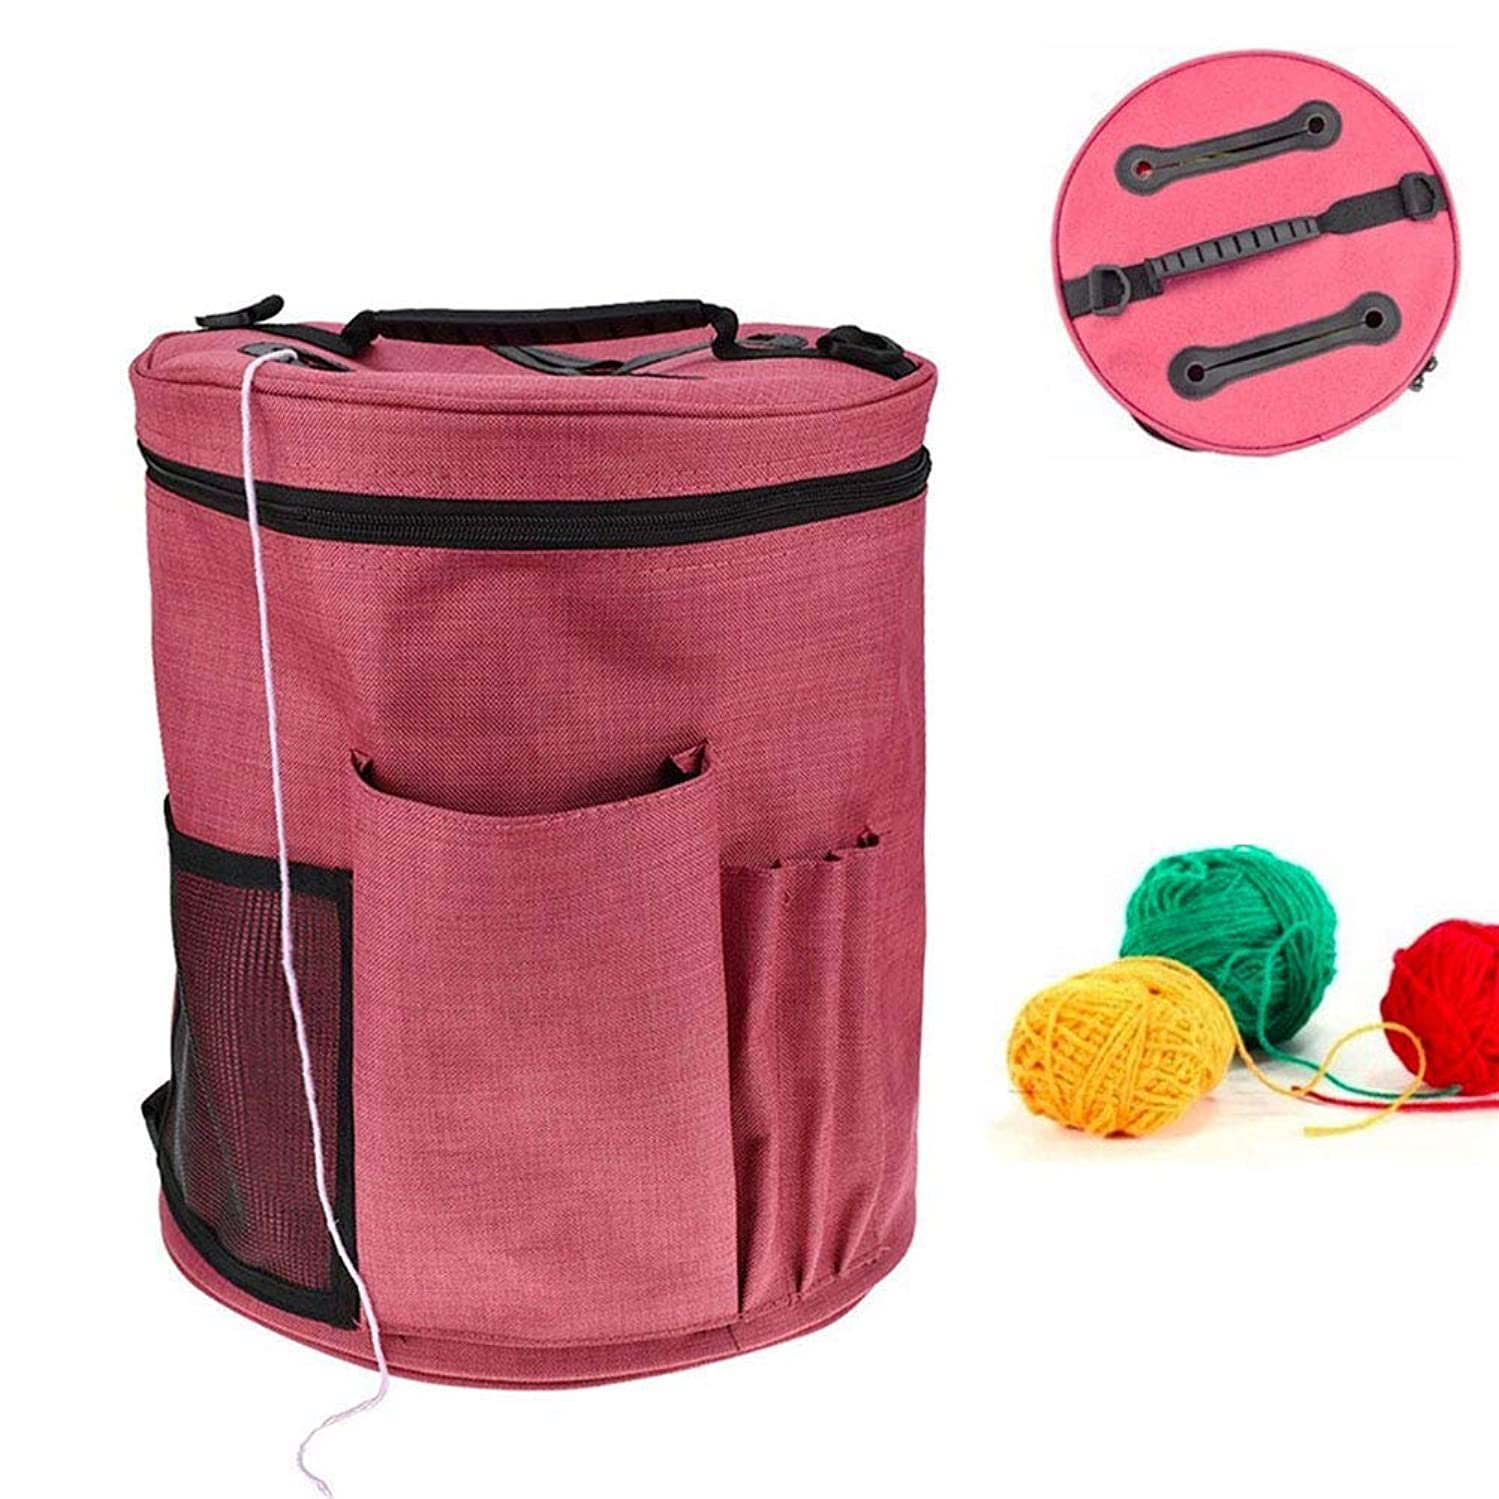 Yarn Storage Organizer Bag, with Compartments Knitting Yarn Ball Holder Pockets for Accessories and Slits to Protect Yarn and Prevent Tangling, Best Gift for Mother's Day (Large)